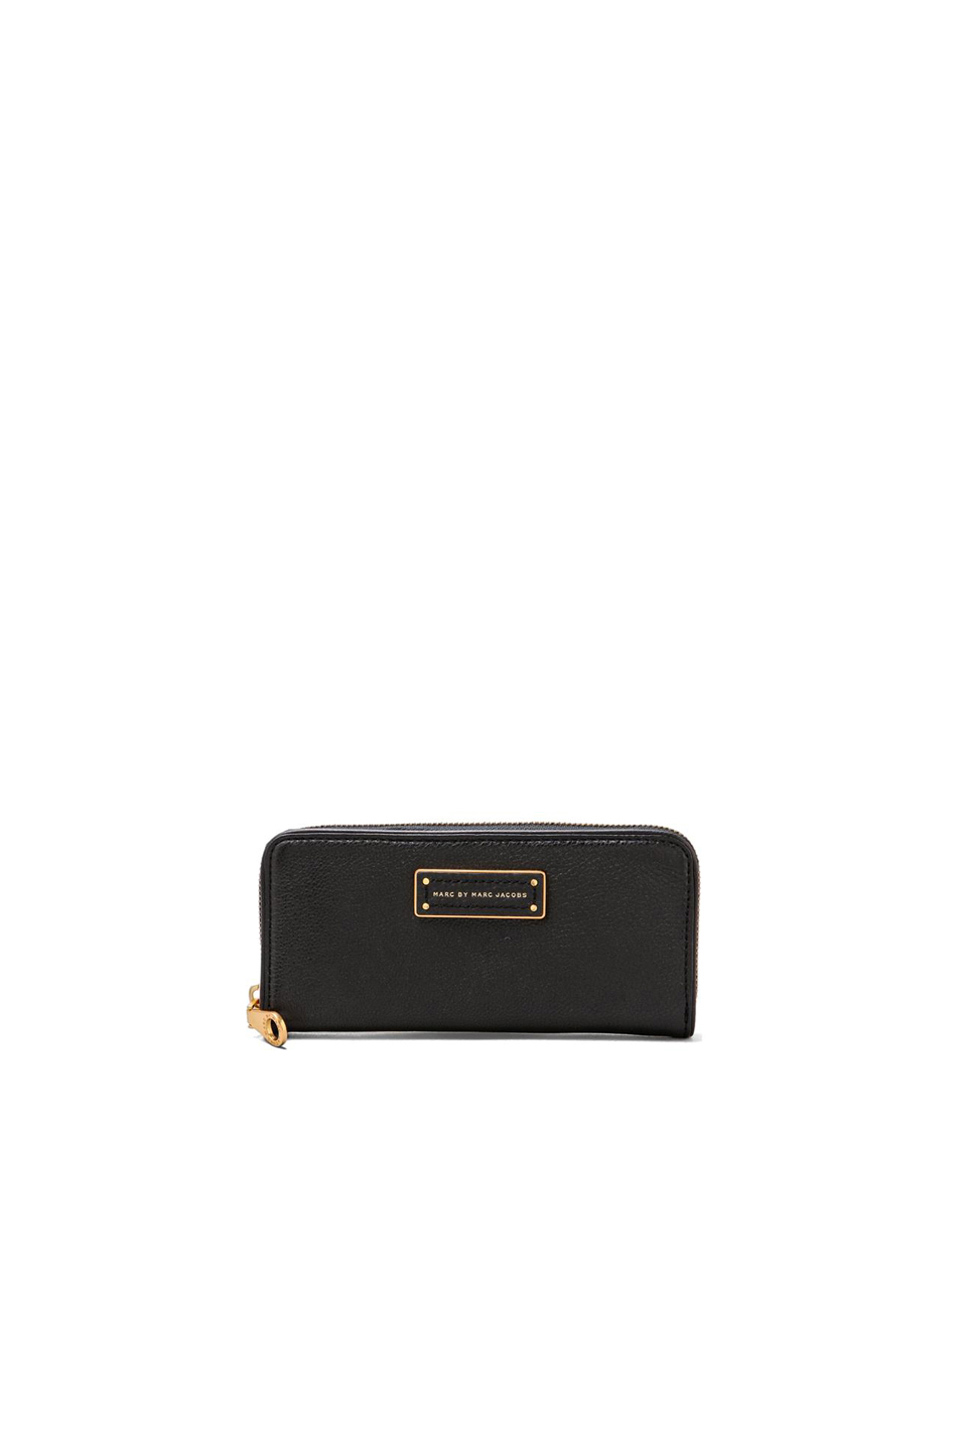 Marc by Marc Jacobs Slim Zip Around Wallet in Black